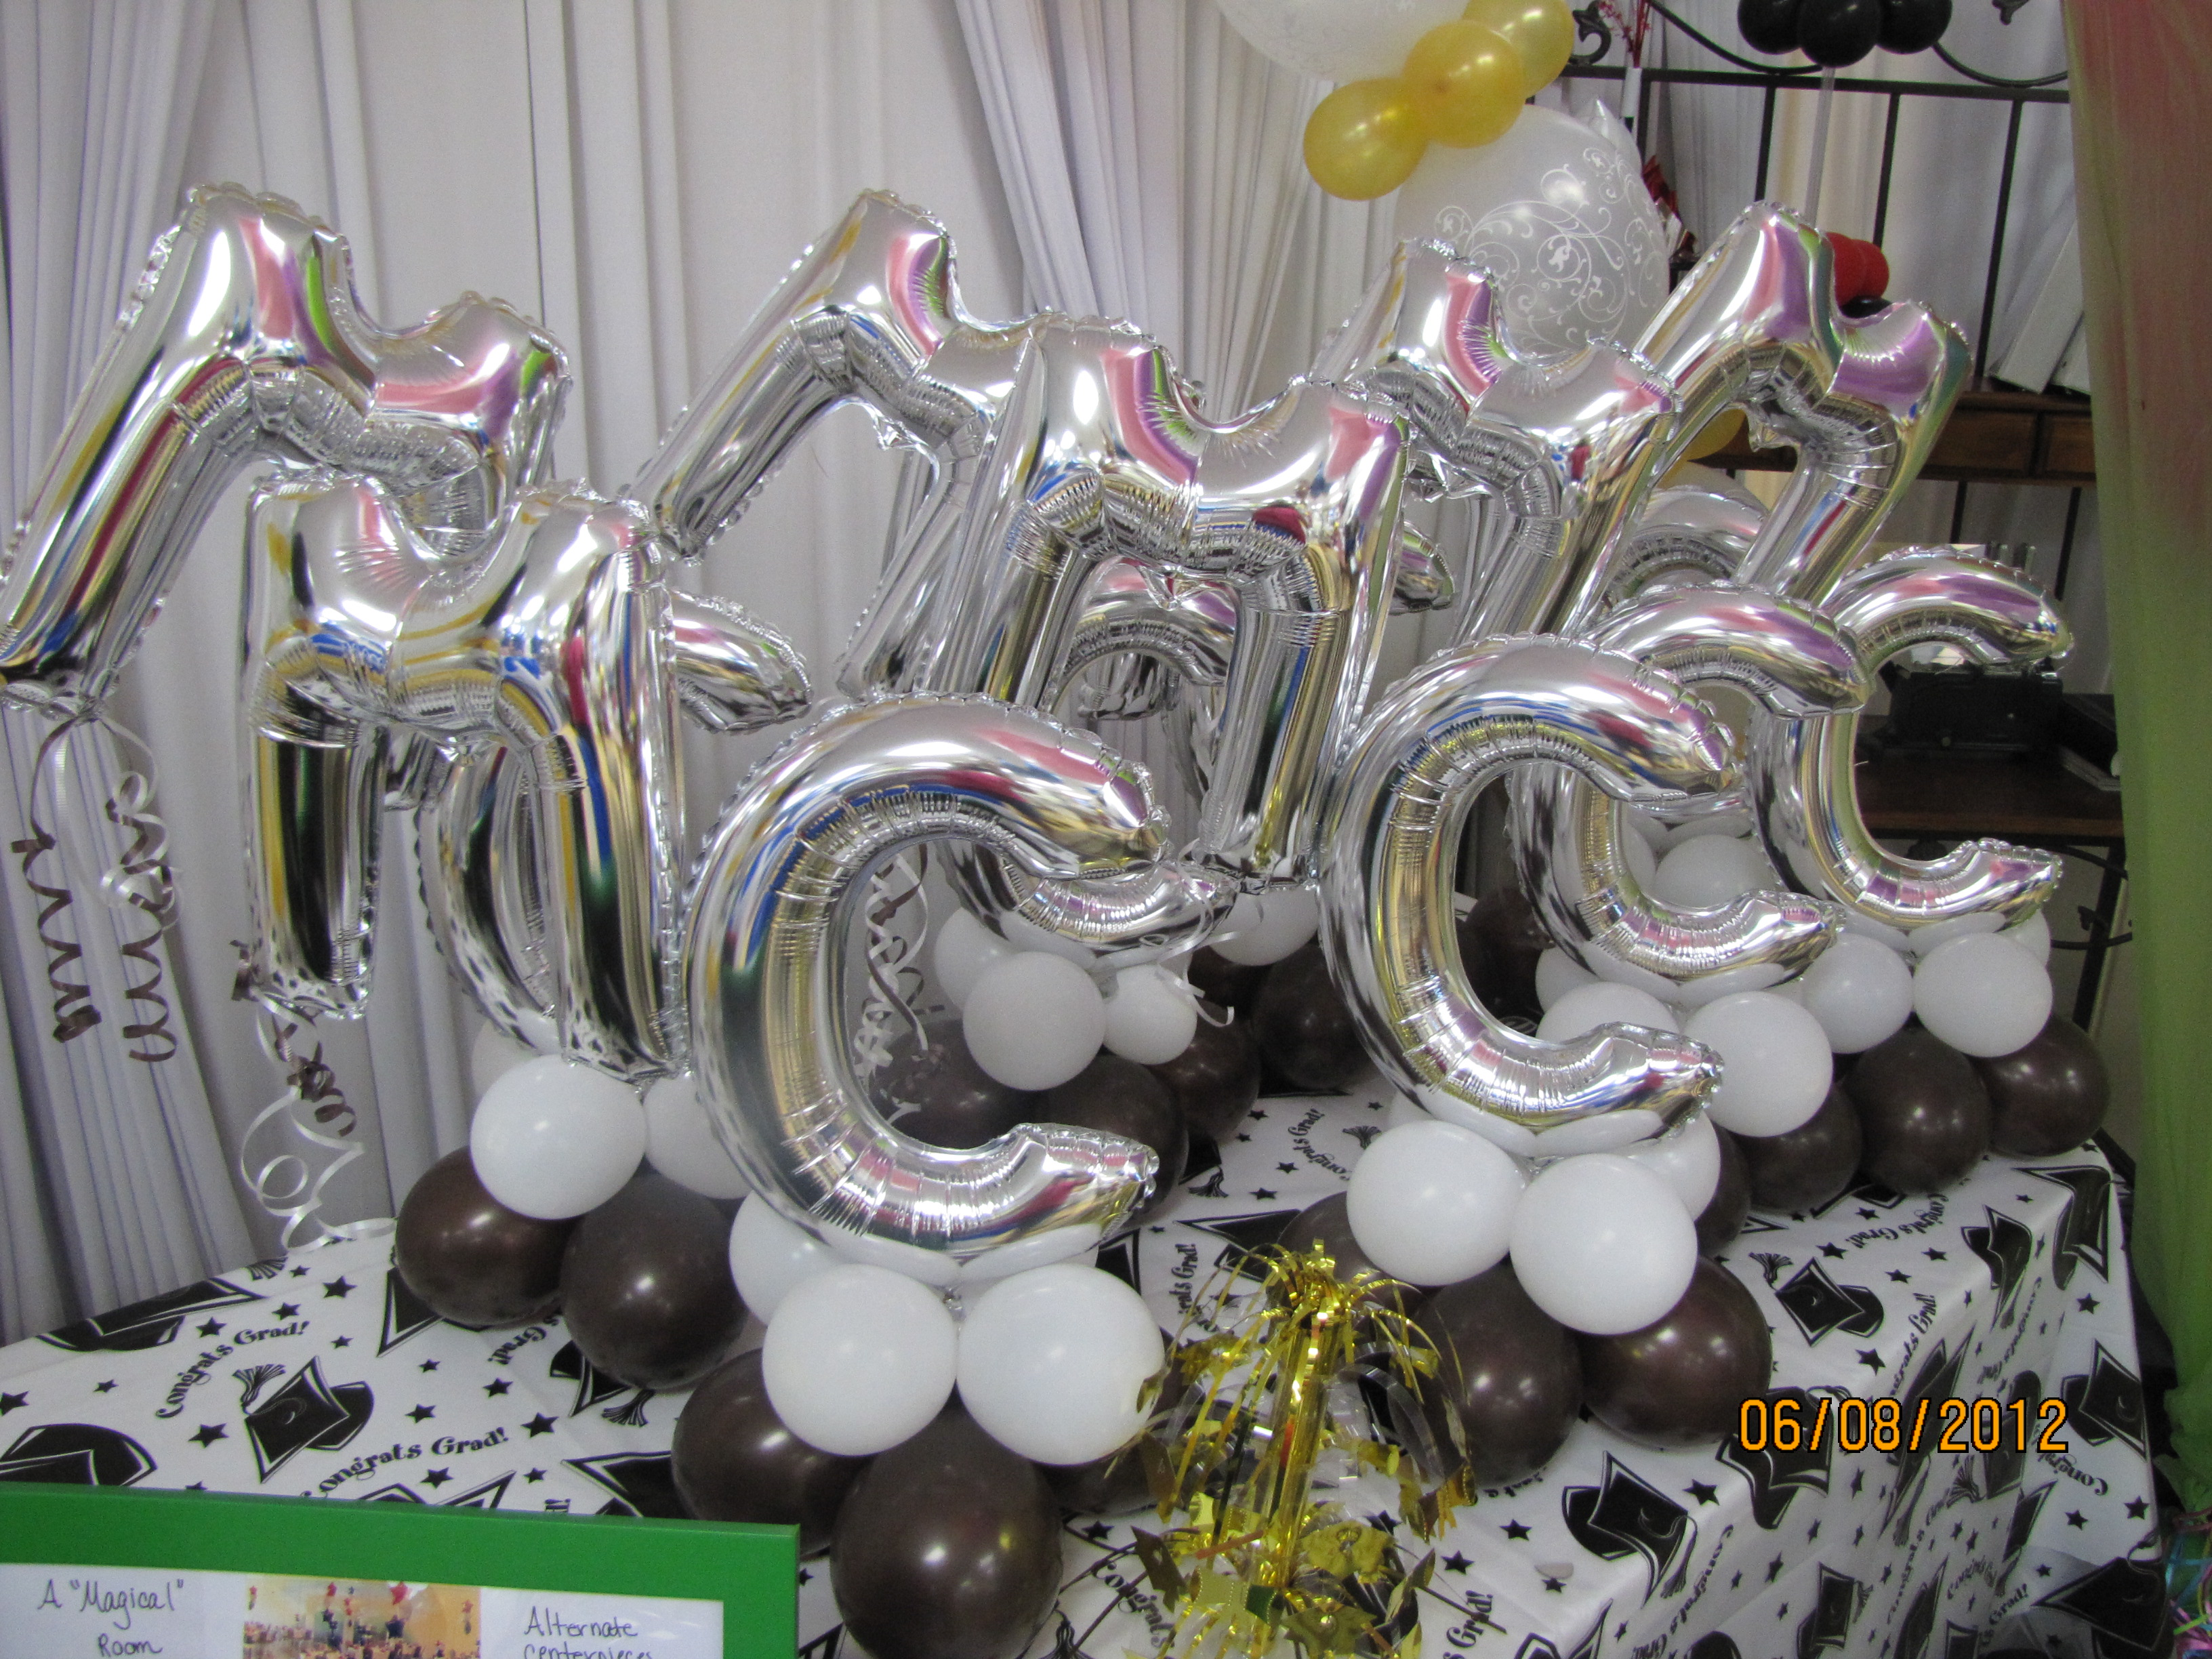 Remarkable Graduation Party Balloon Decoration Ideas 3264 x 2448 · 2300 kB · jpeg